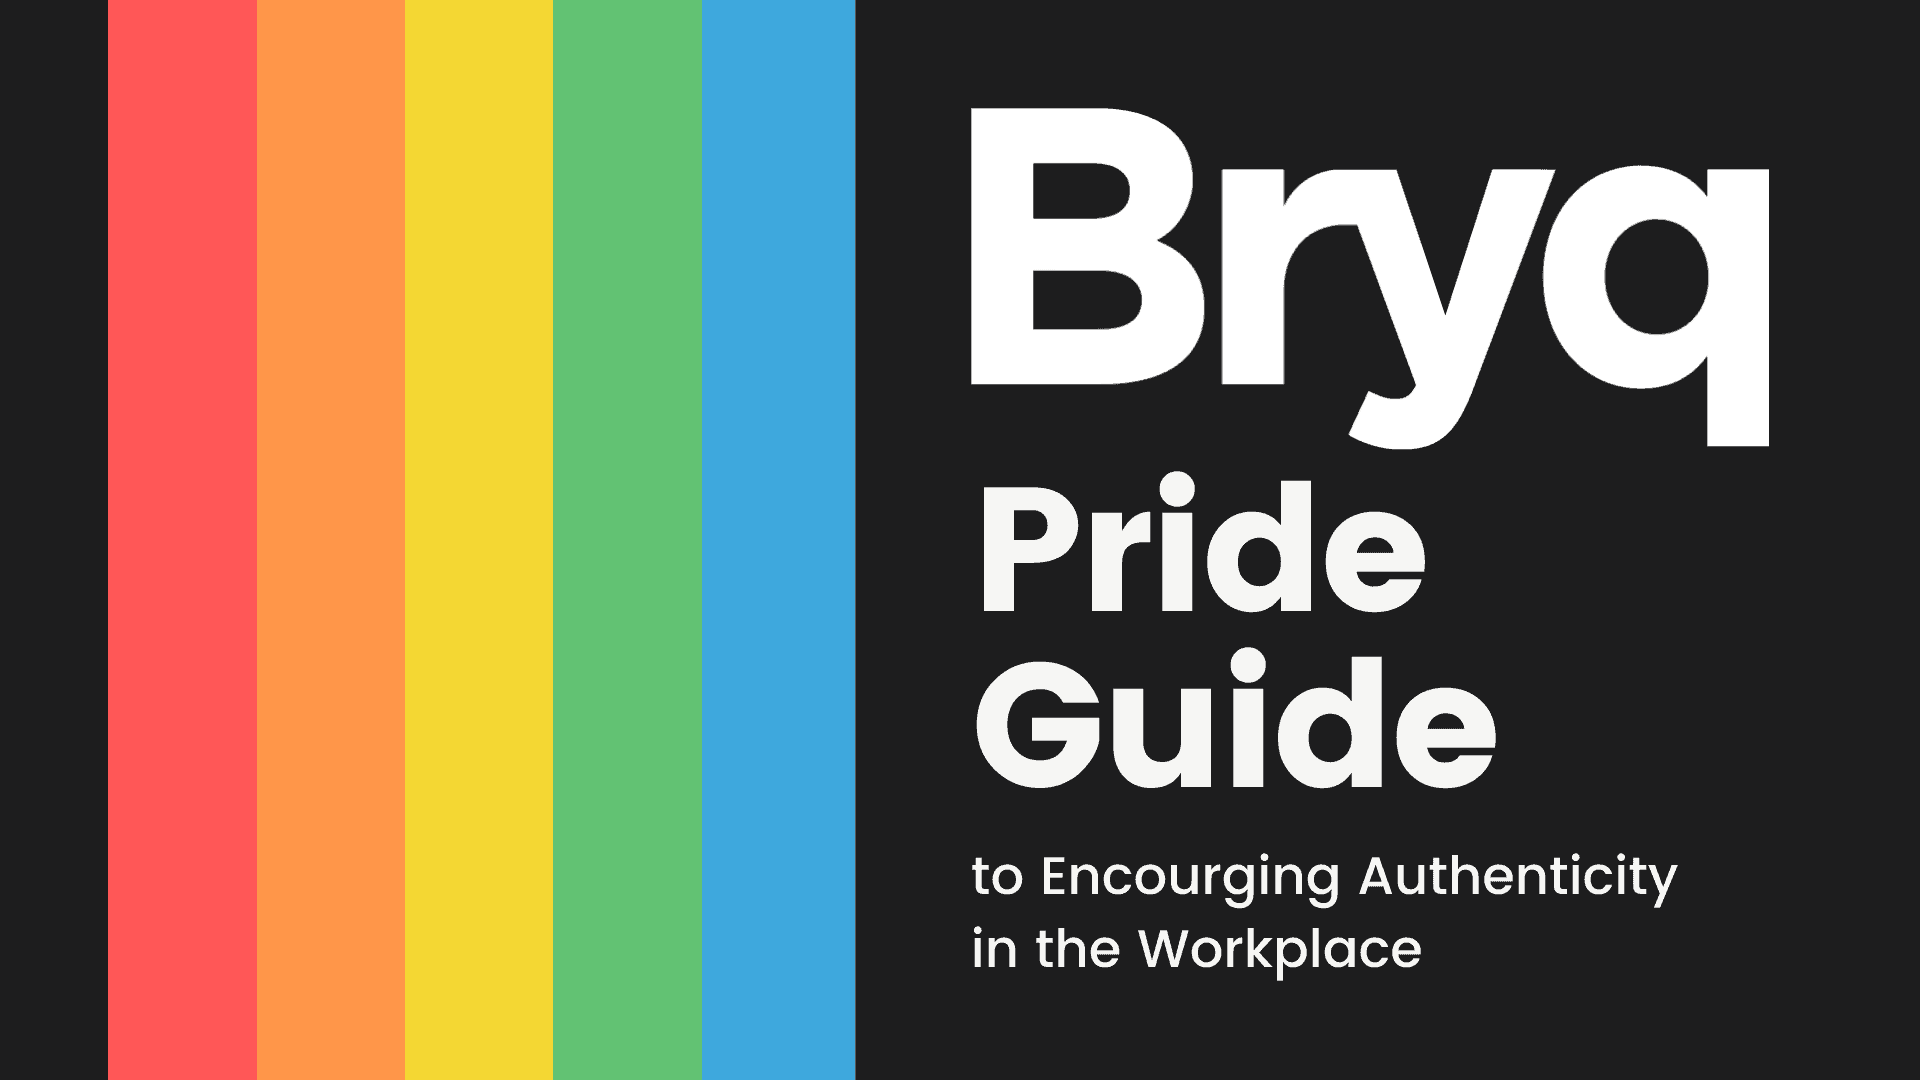 This is Bryq's Pride Guide to Encouraging Authenticity in the Workplace for LGBTQ WorkersAuthenticity in